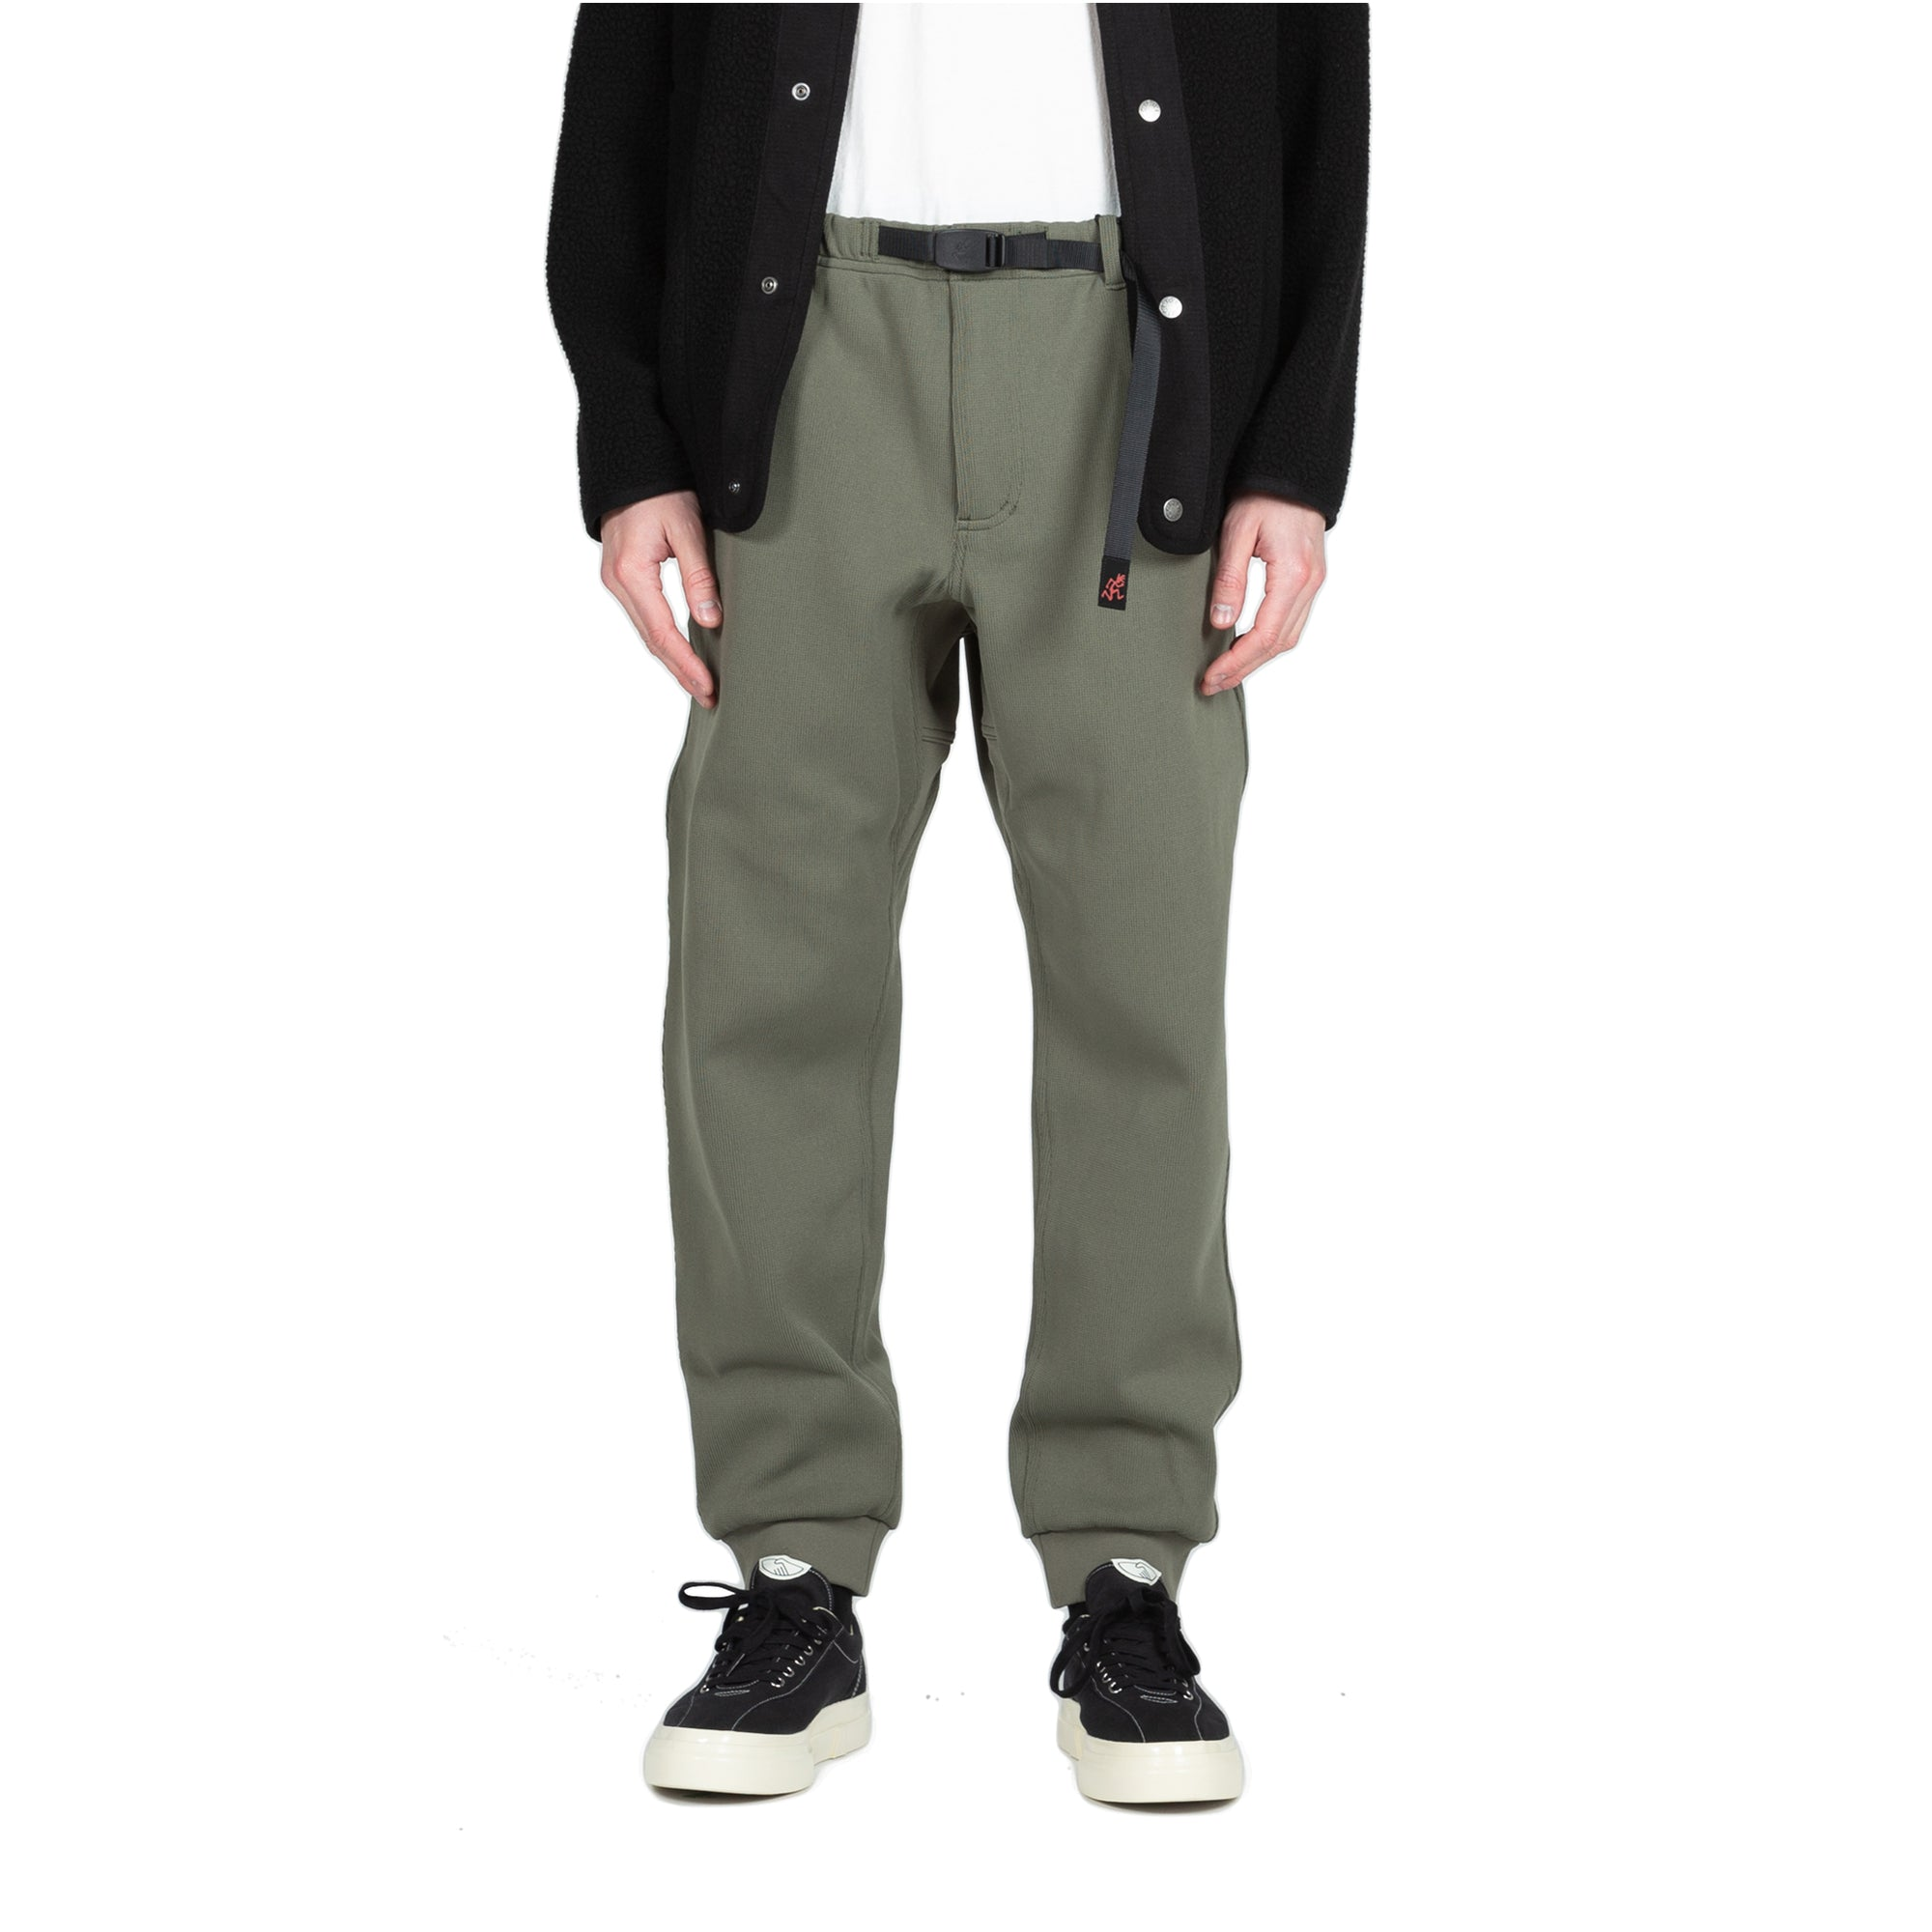 gramicci Lassen Pant olive all weather rain gear front